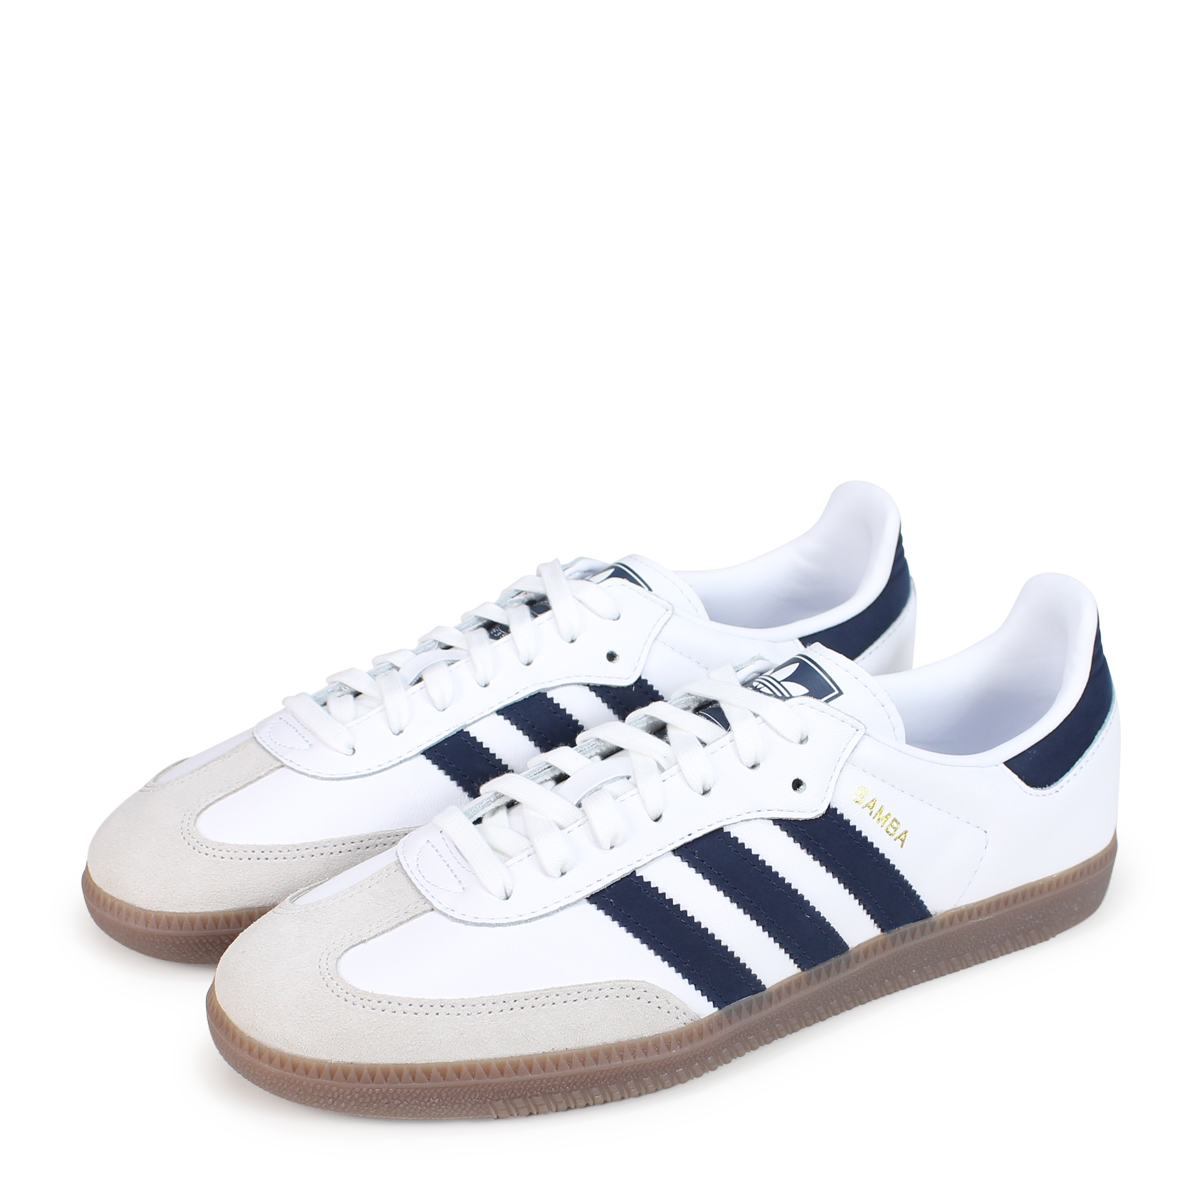 adidas Originals SAMBA OG Adidas originals samba sneakers men B75681 white [load planned Shinnyu load in reservation product 1018 containing] [1810]